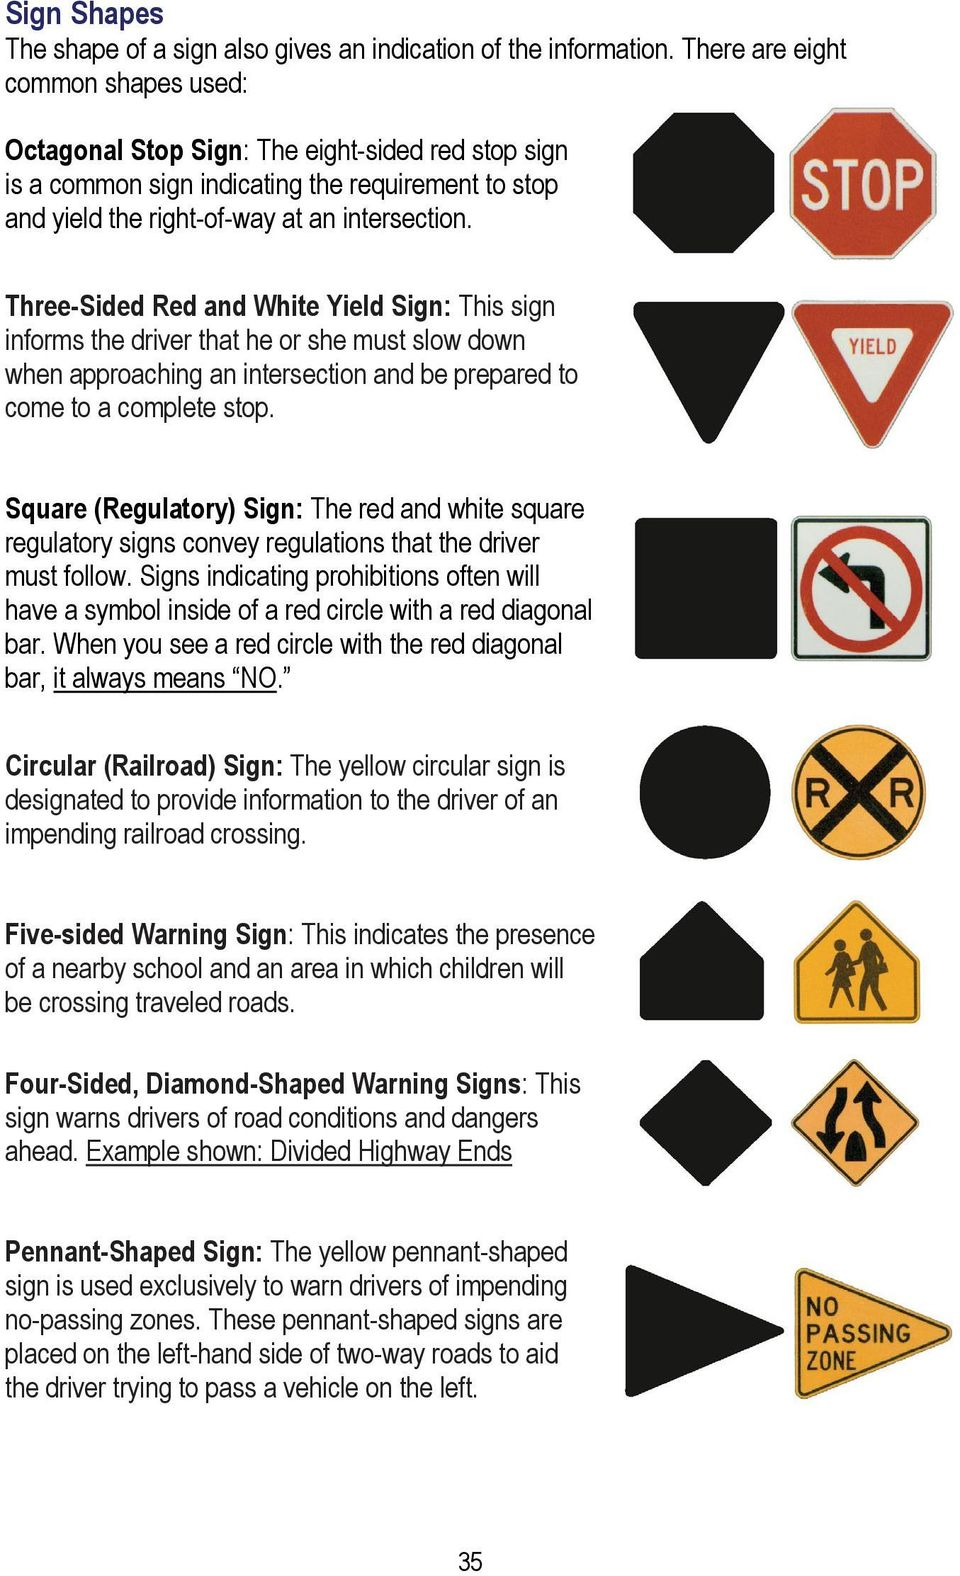 Three-Sided Red and White Yield Sign: This sign informs the driver that he or she must slow down when approaching an intersection and be prepared to come to a complete stop.